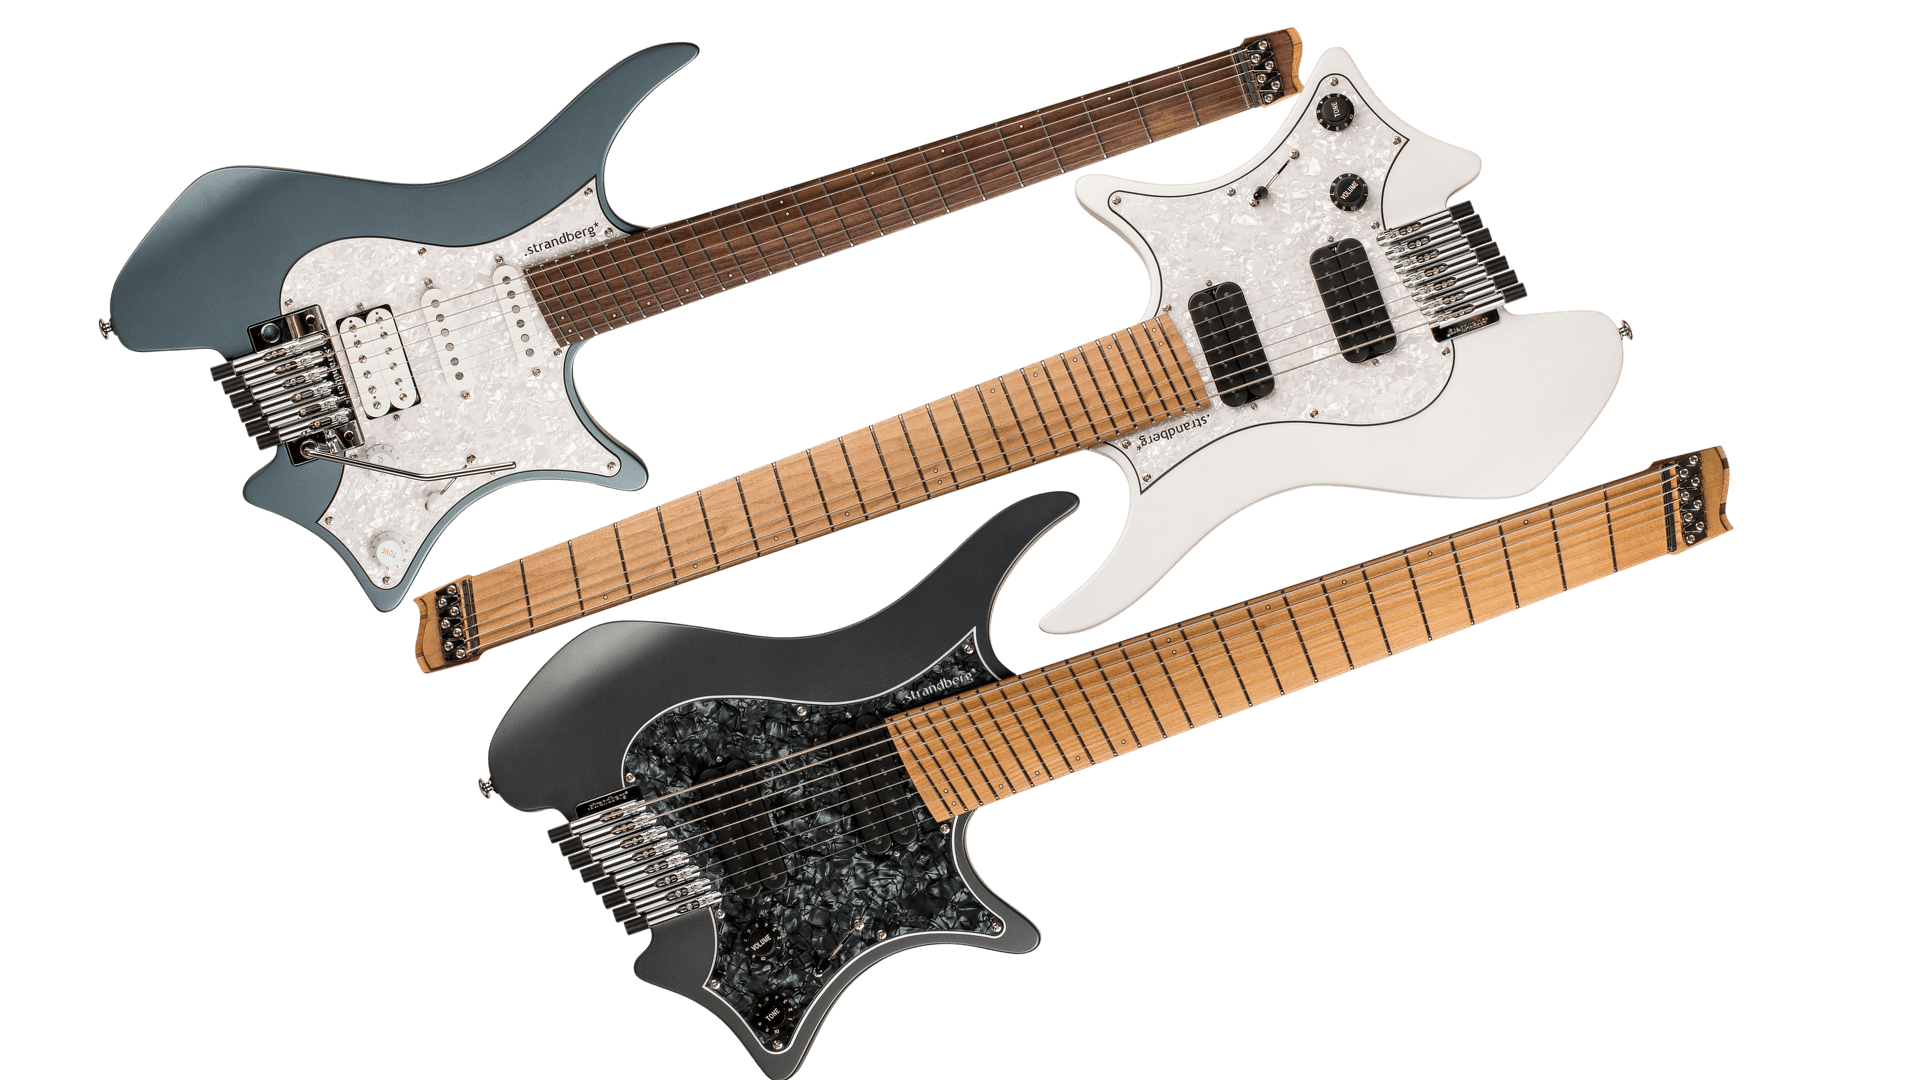 Family photo Boden Classic 6, 7, 8 string headless guitars